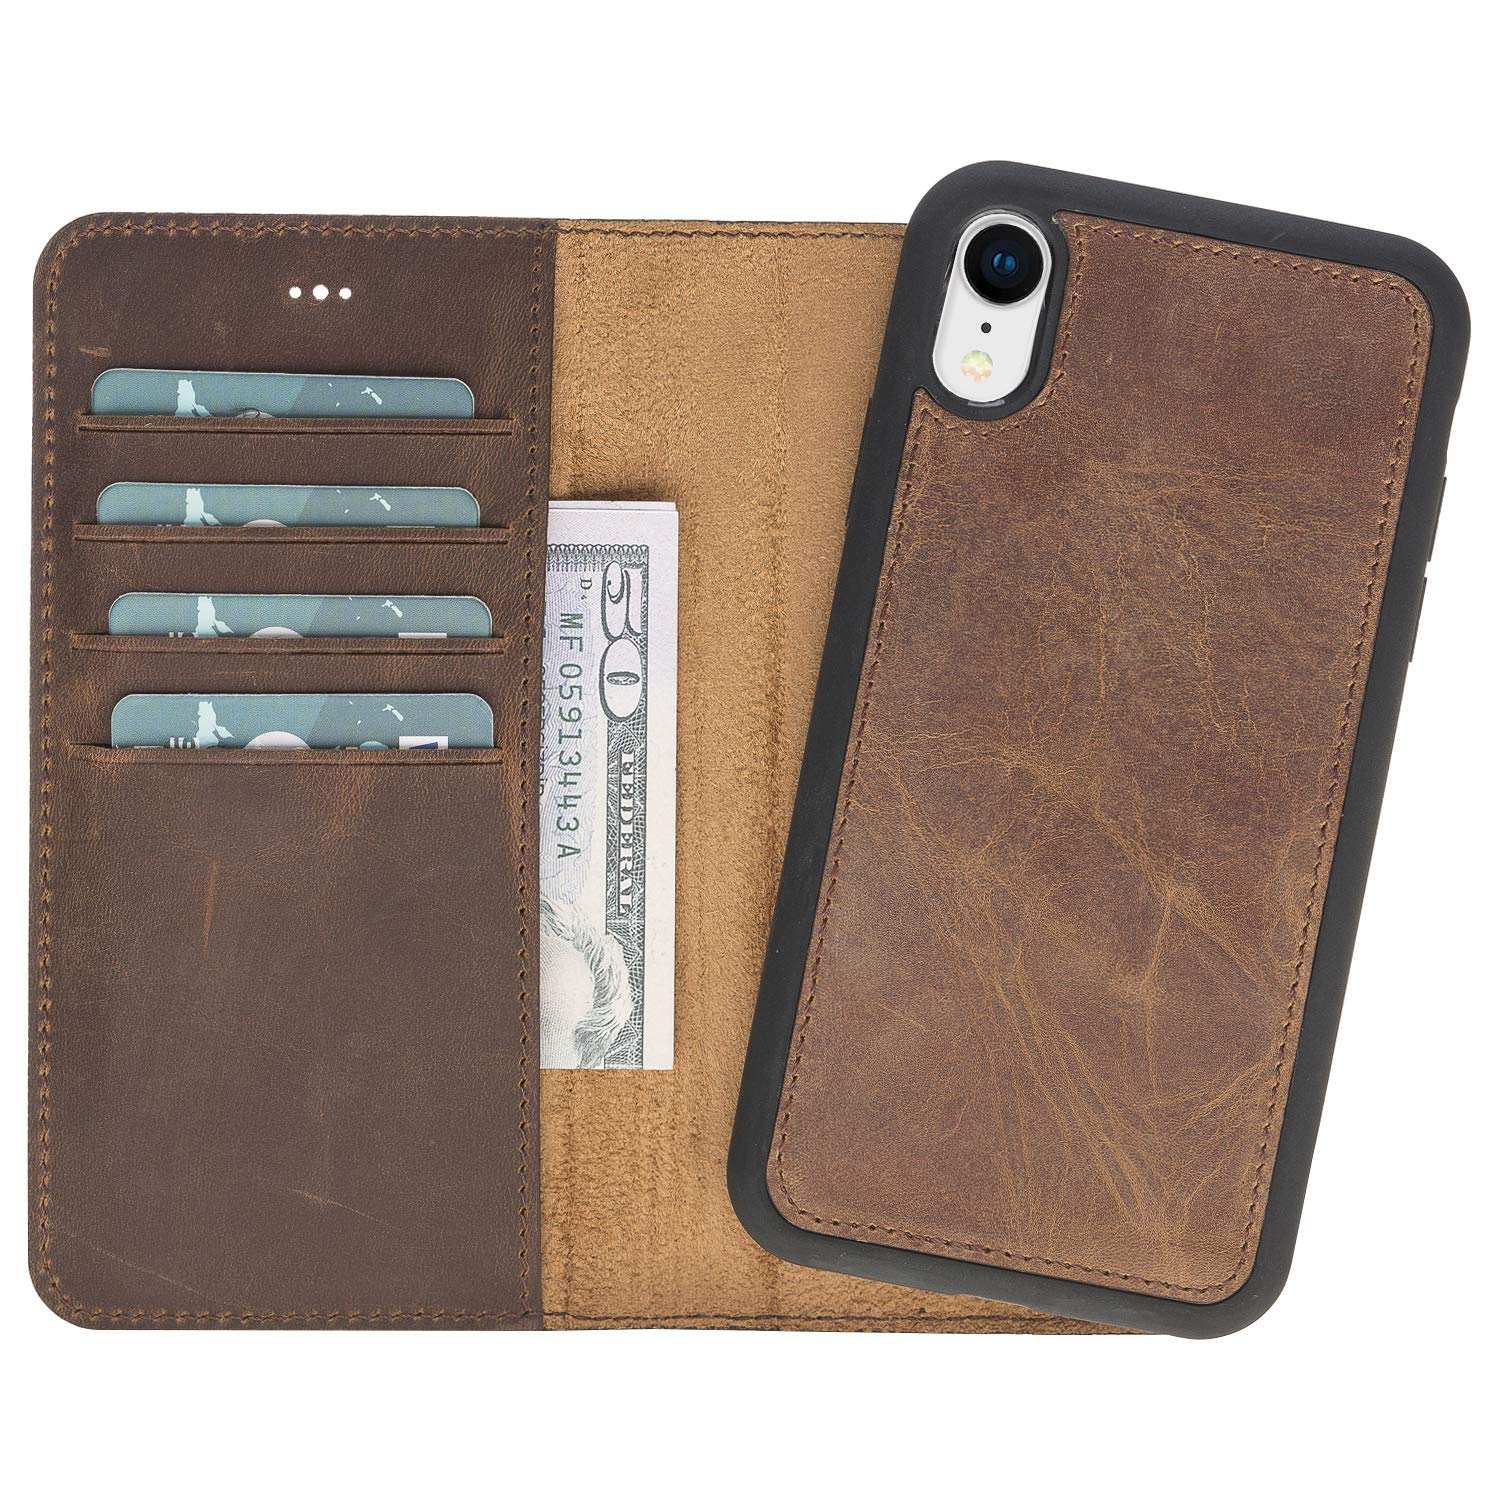 sports shoes 773aa 117ae Amazon.com: iPhone XR Wallet Case, Magnetic Detachable Leather Case ...